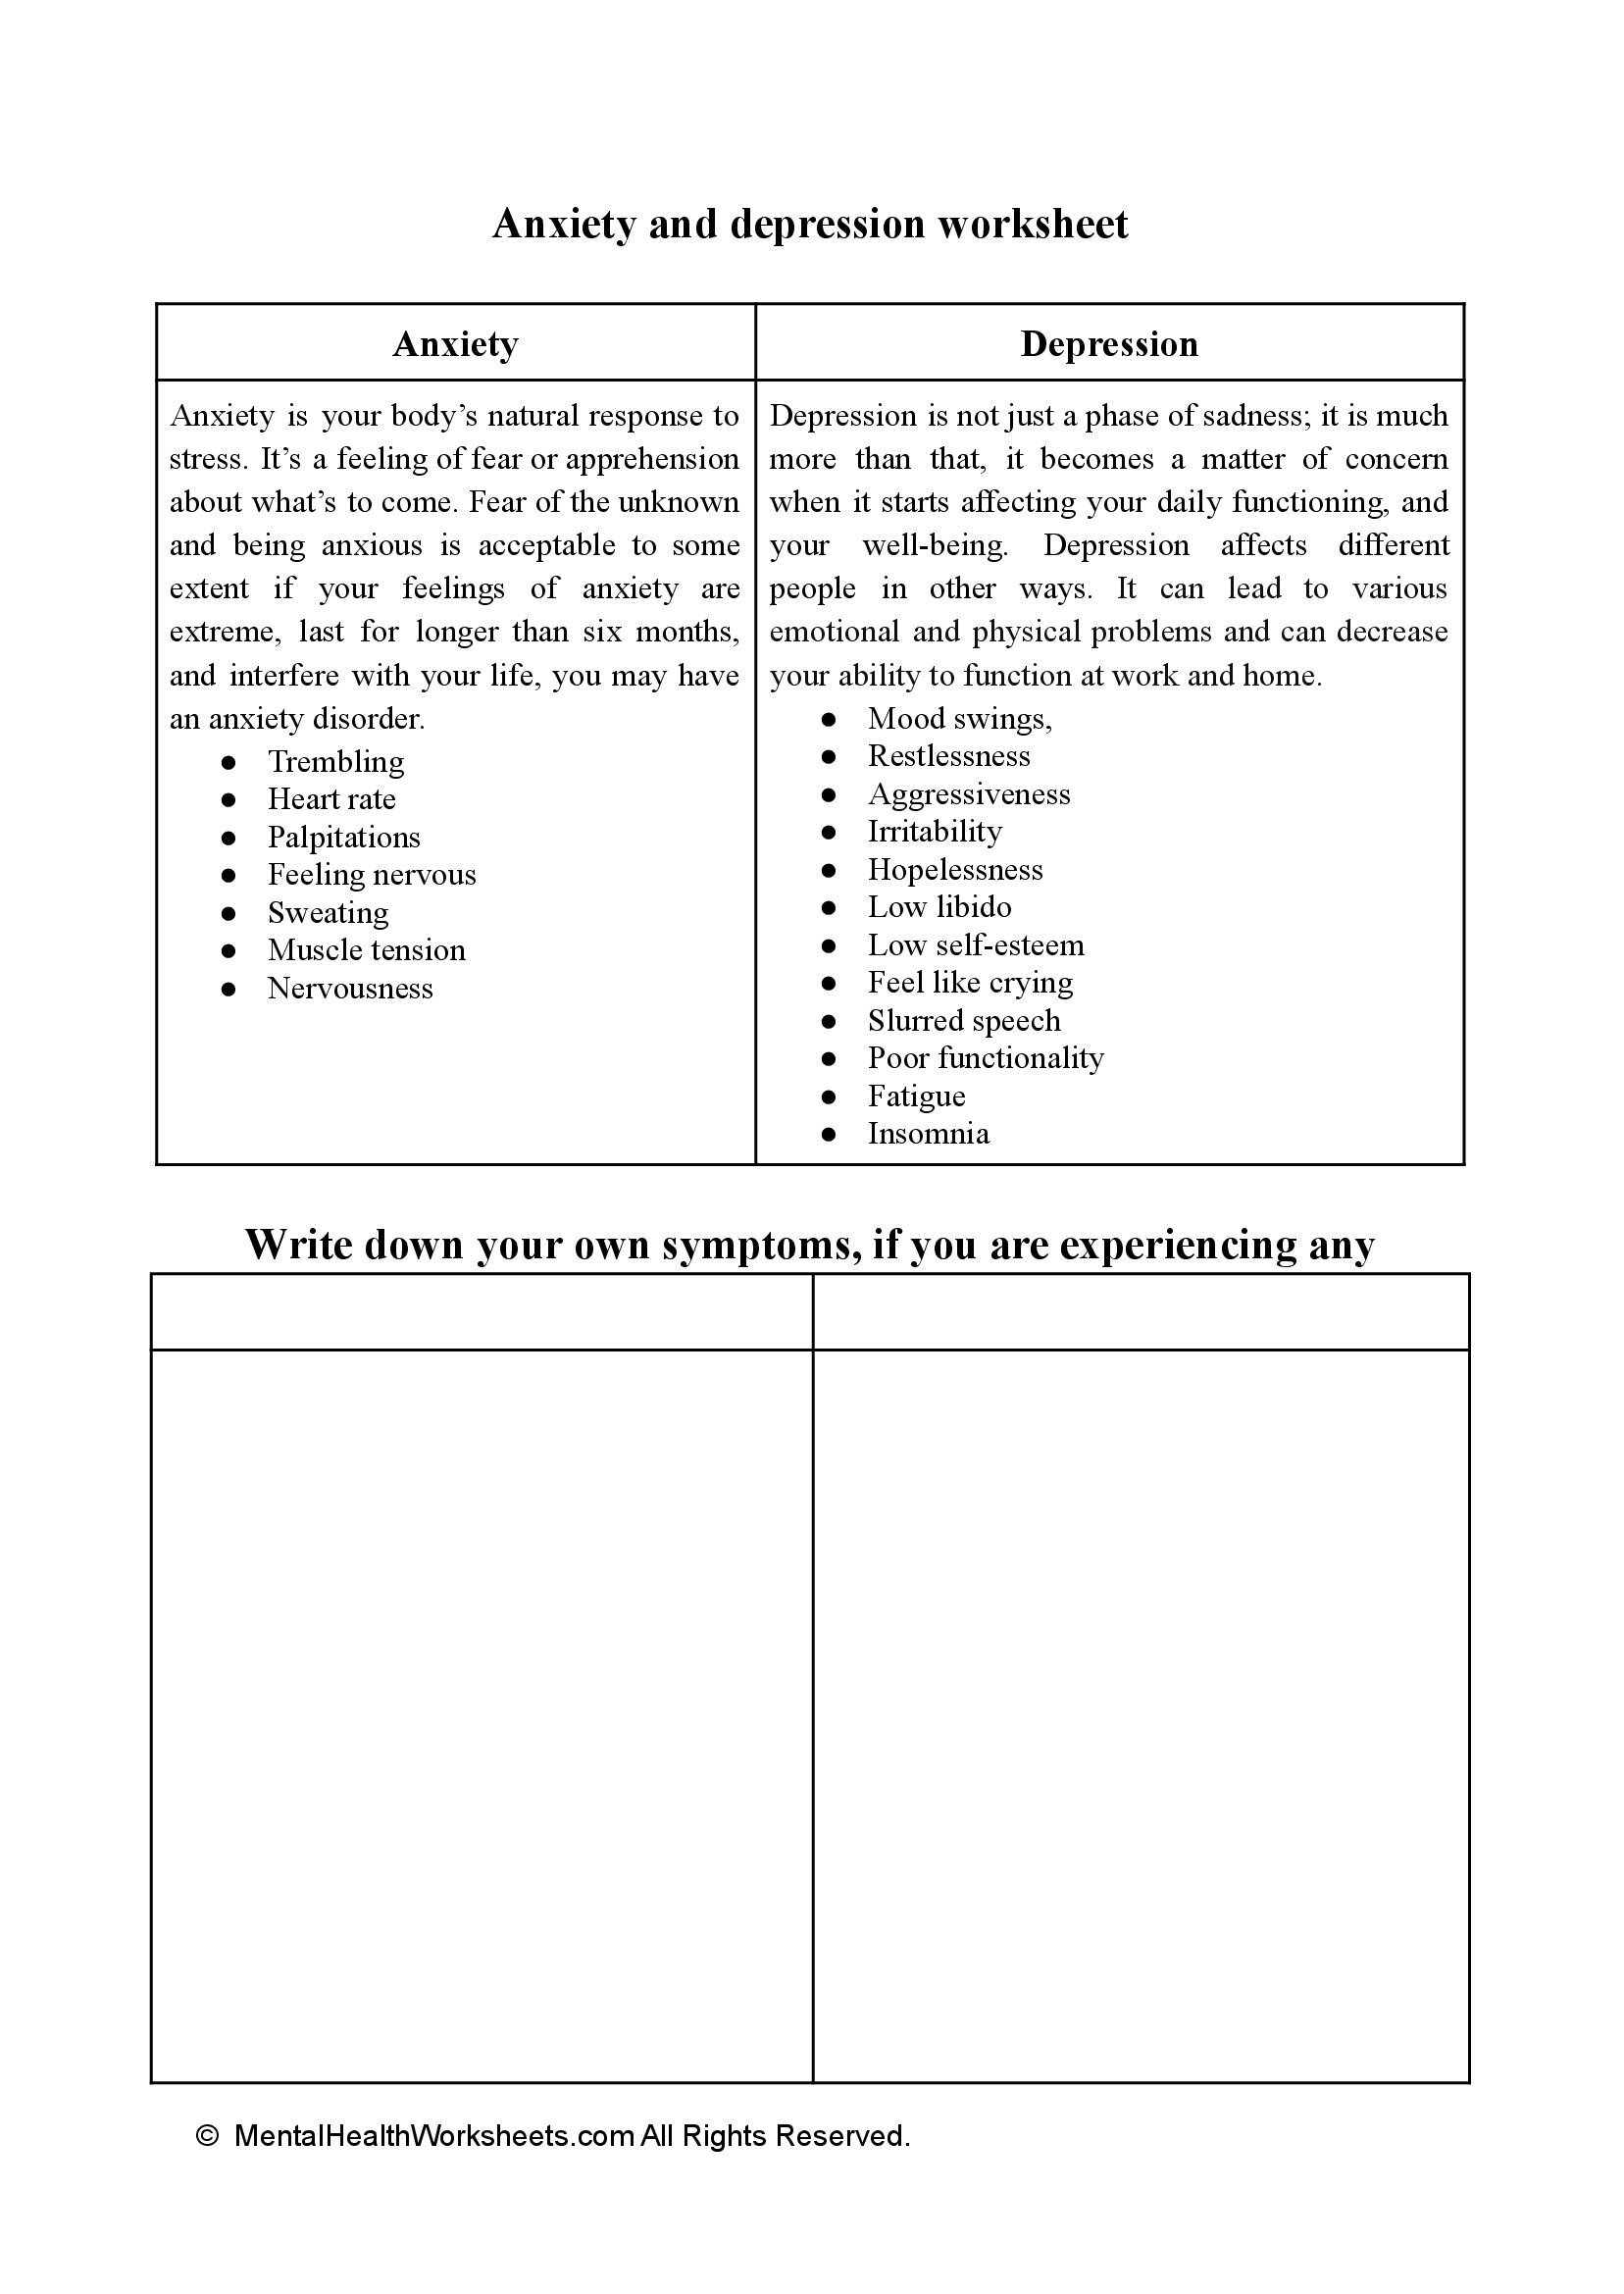 ANXIETY AND DEPRESSION WORKSHEET